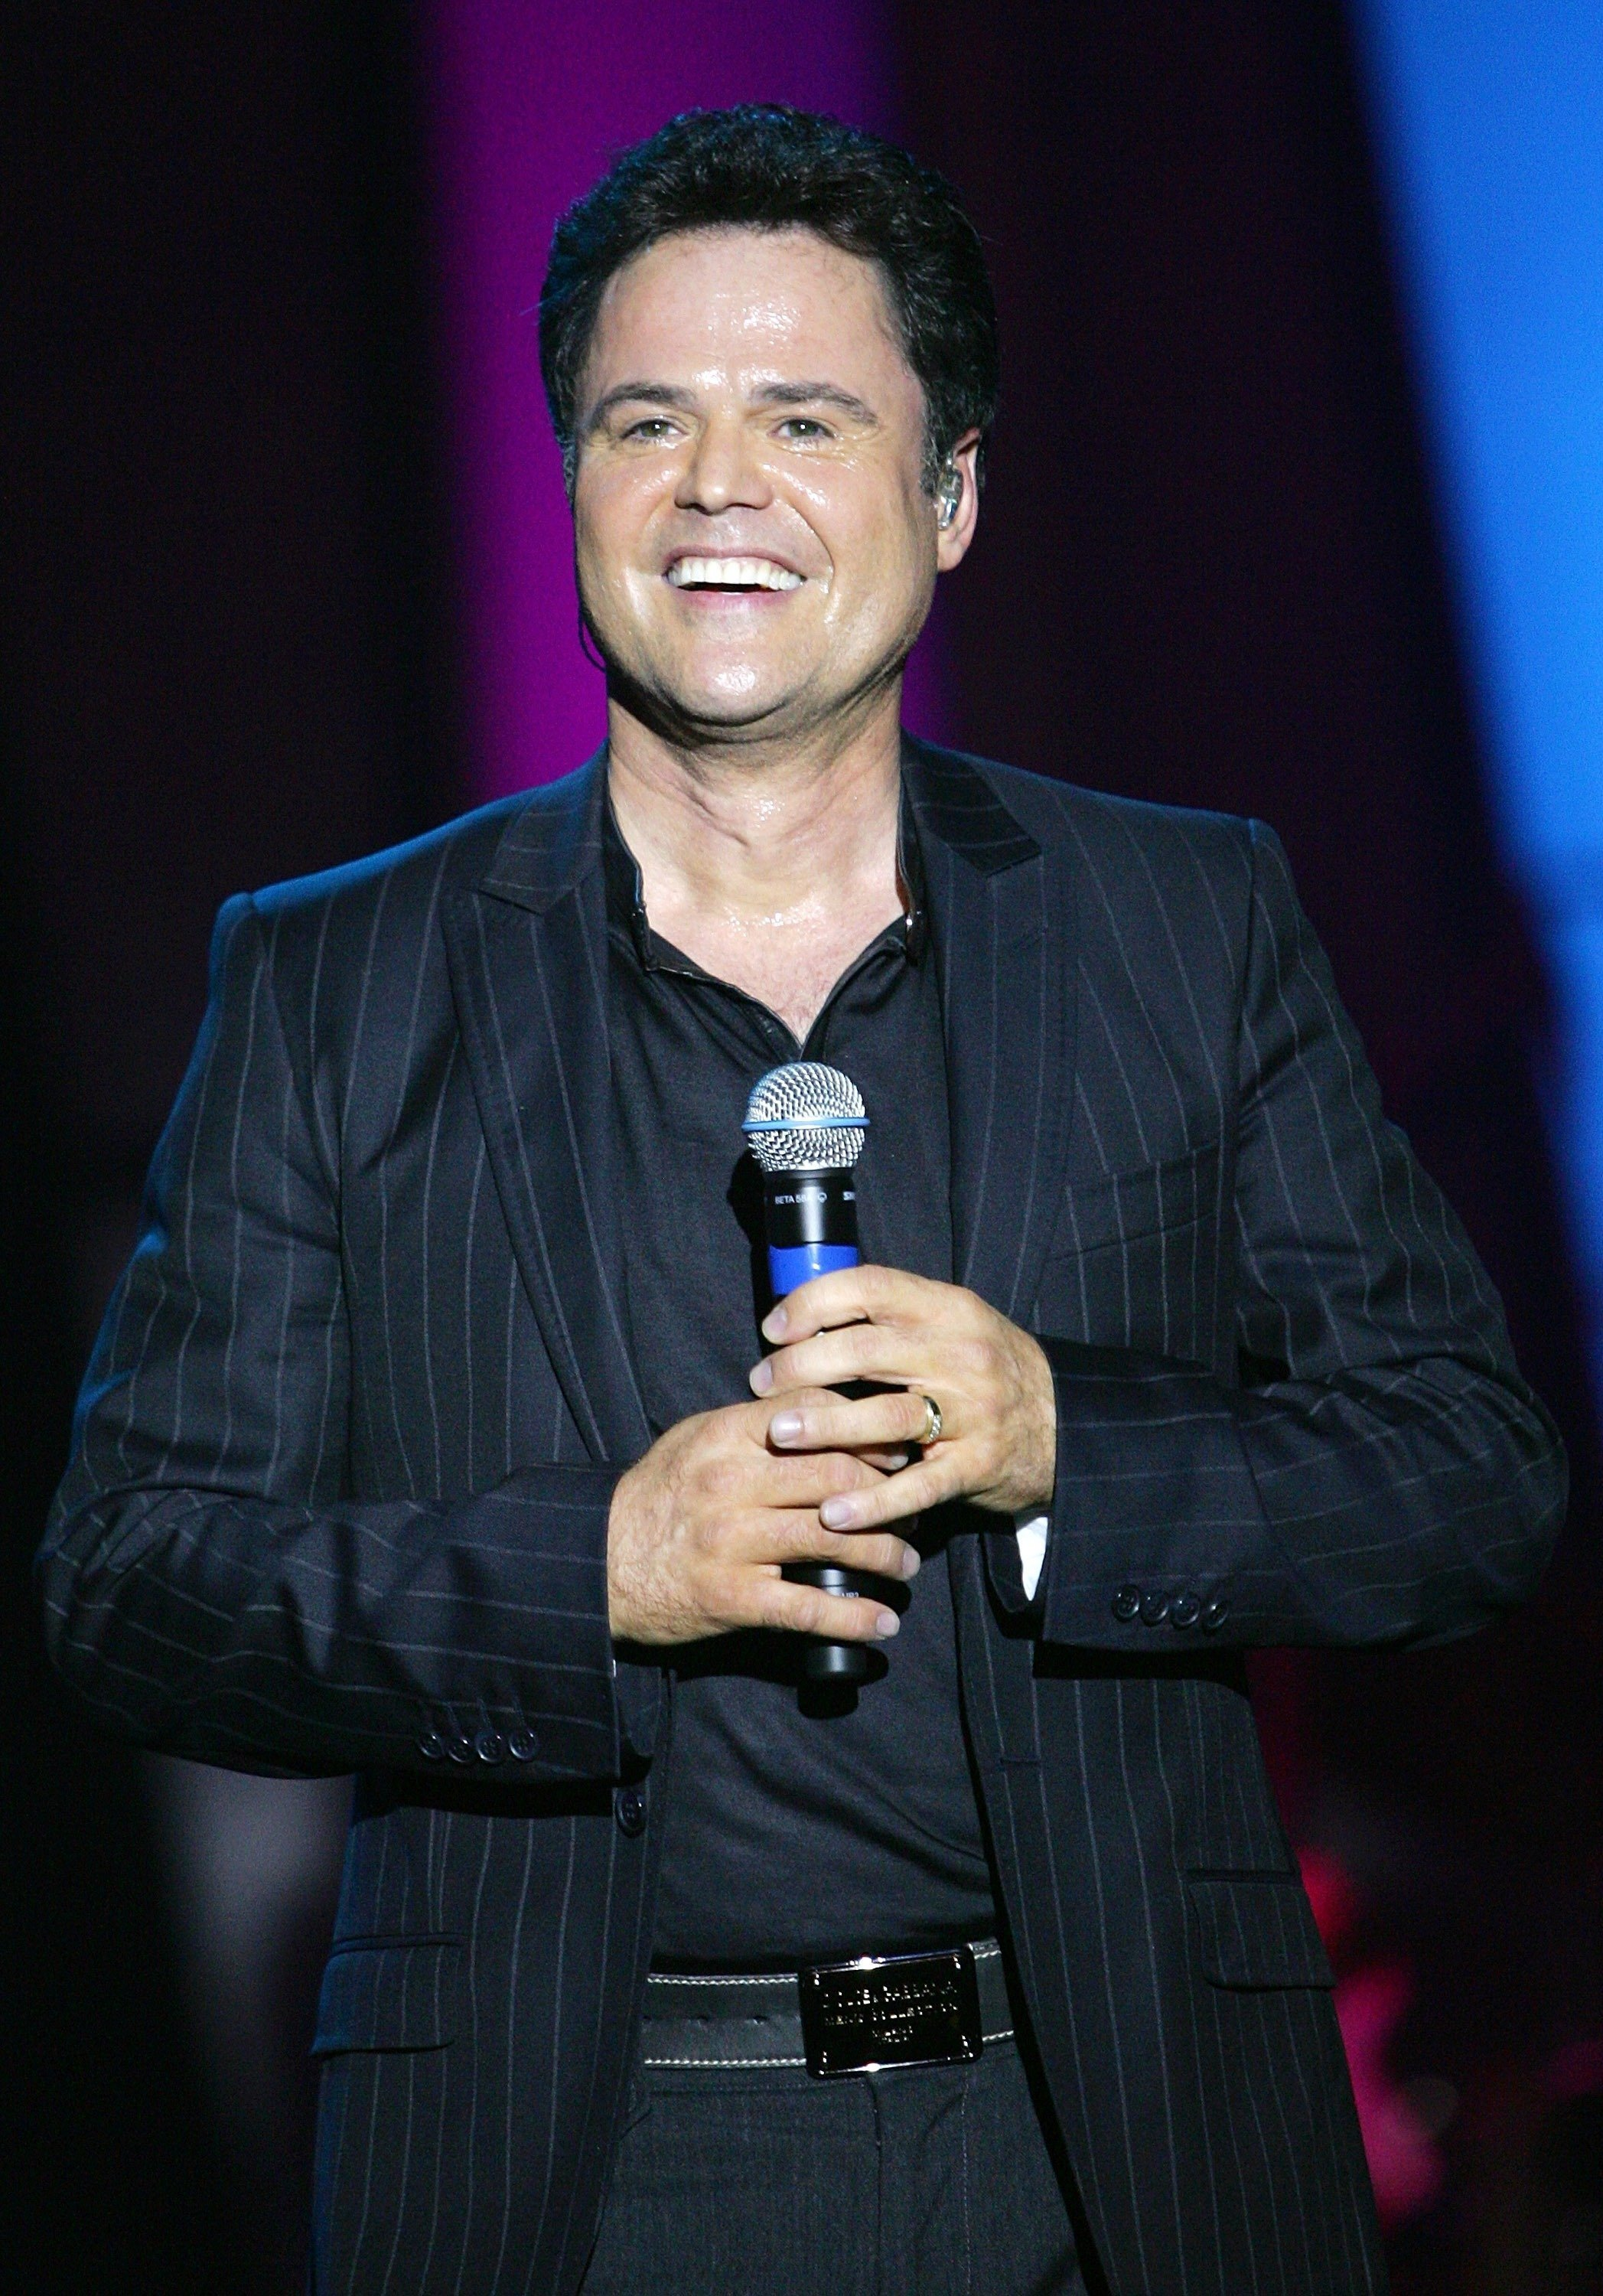 Donny Osmond on August 14, 2007 in Las Vegas, Nevada | Source: Getty Images